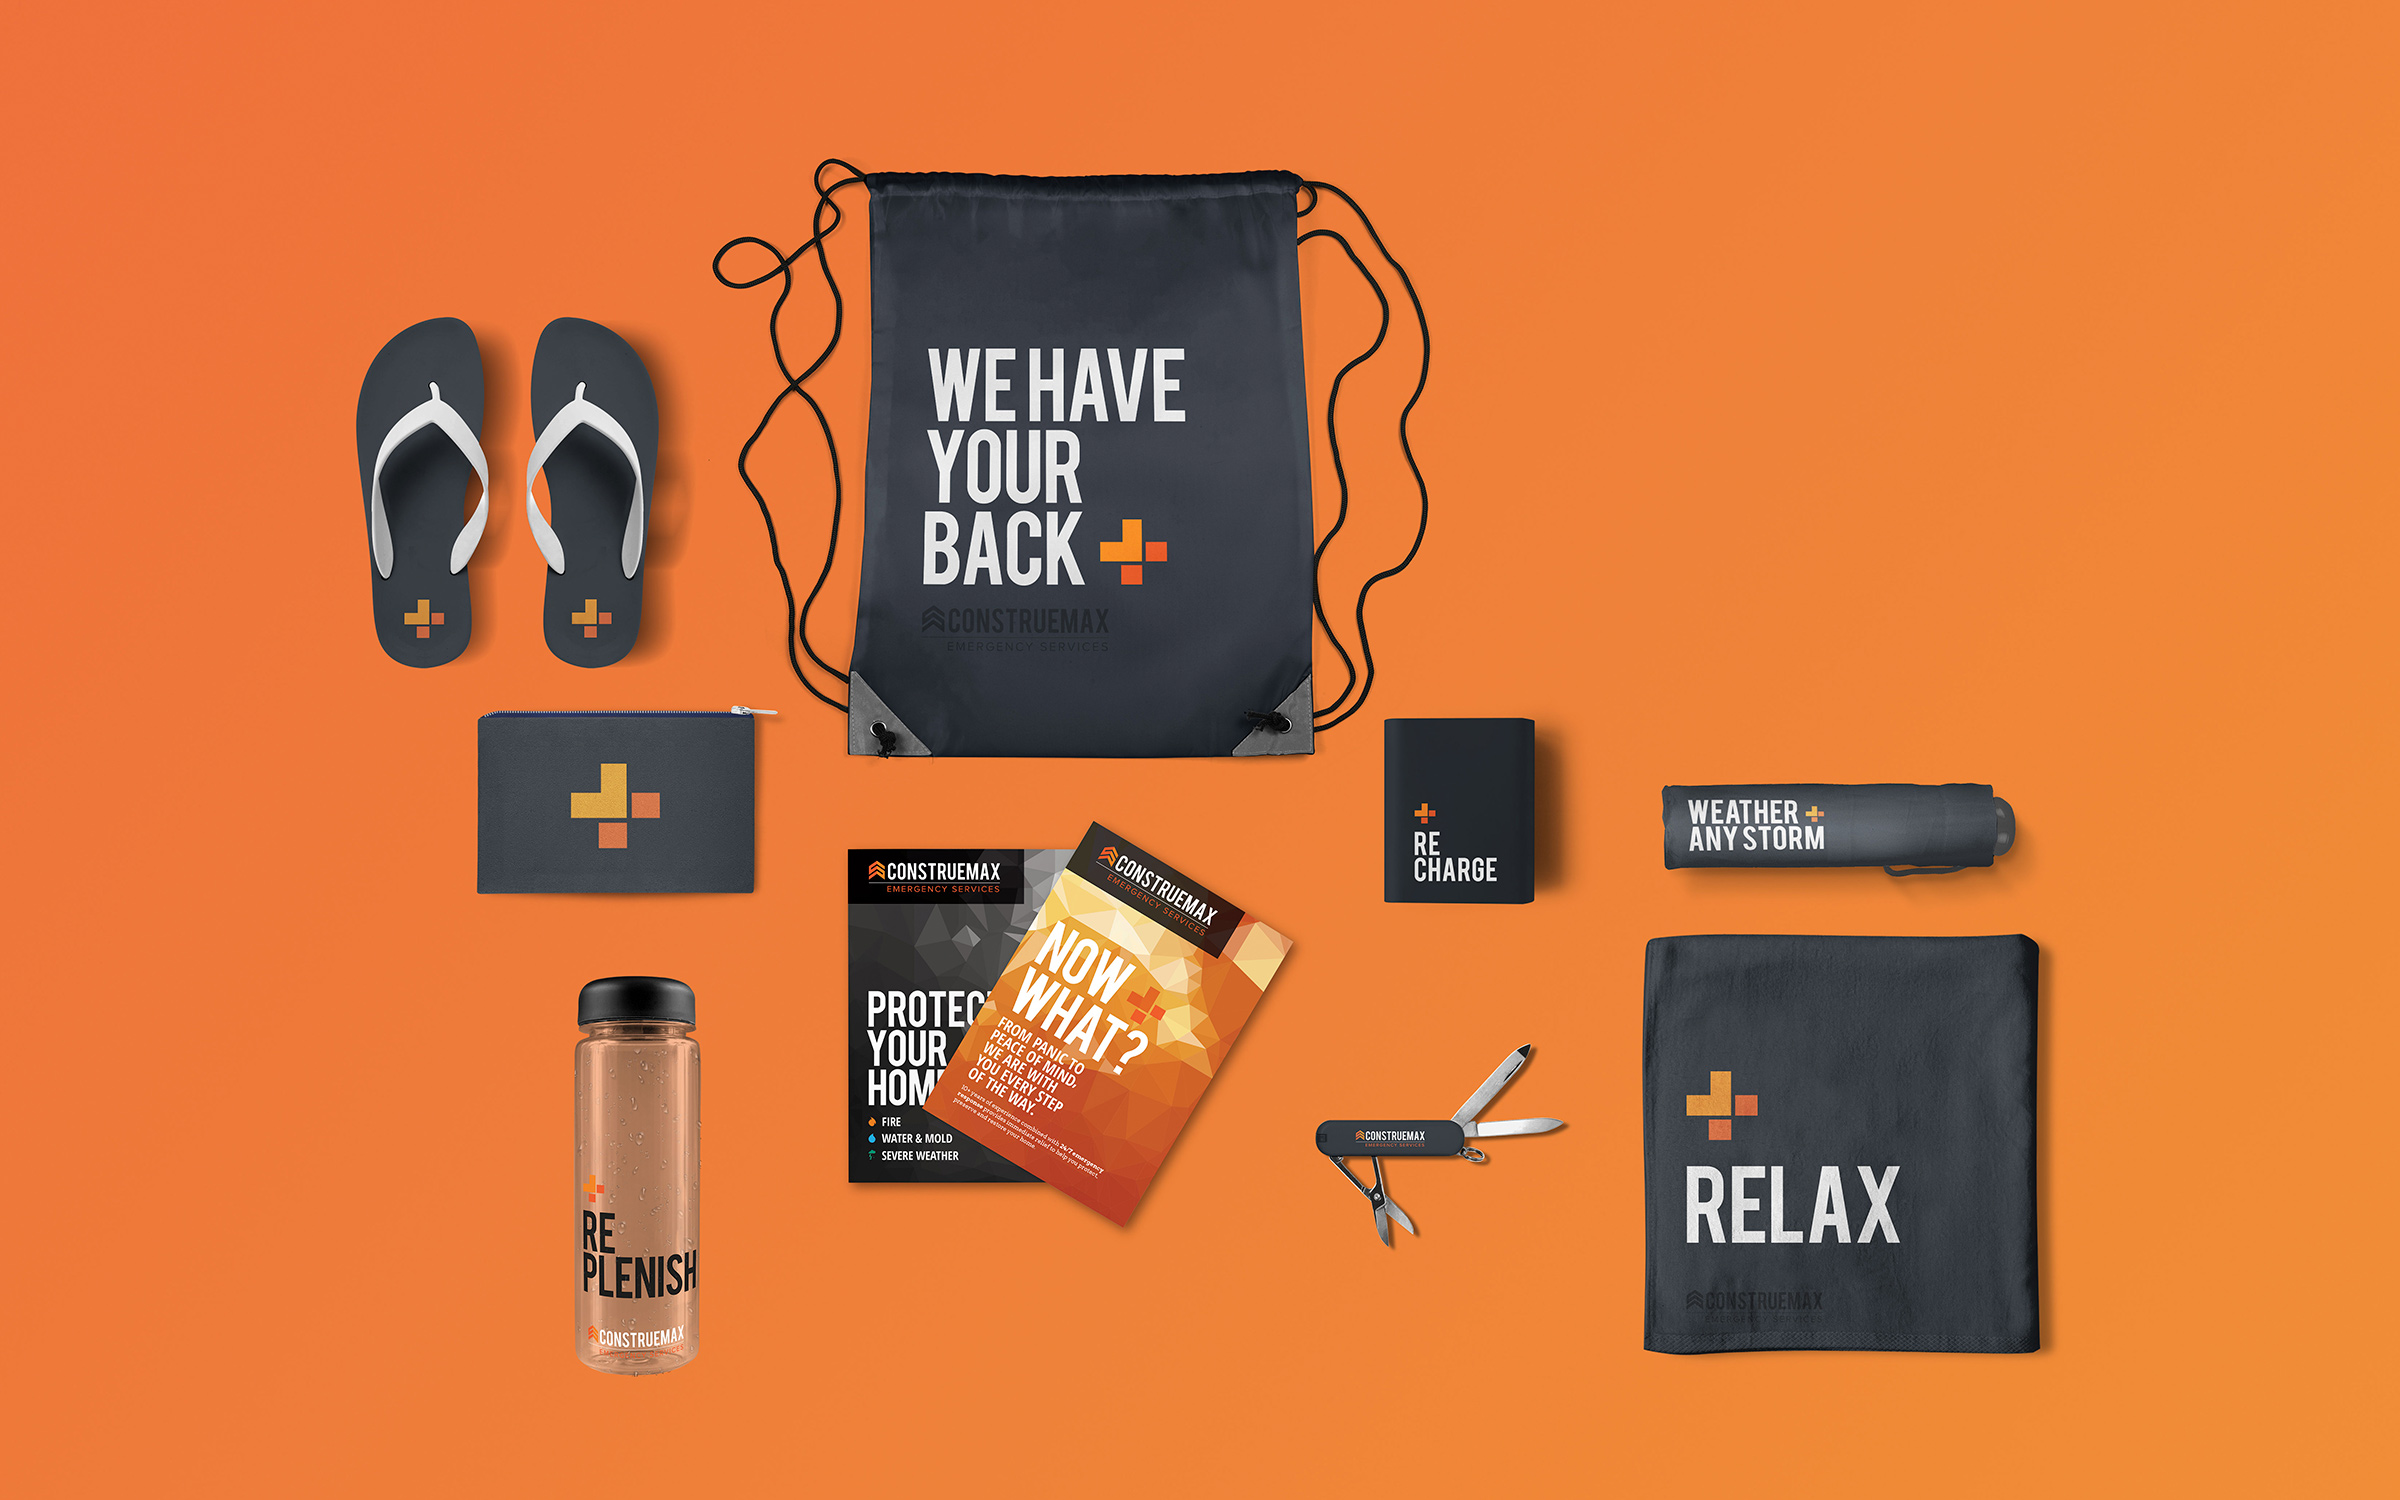 Various branded collateral items - flipflops, drawstring bag, umbrella, reusable water bottle, battery pack and multi-use tool on orange gradient